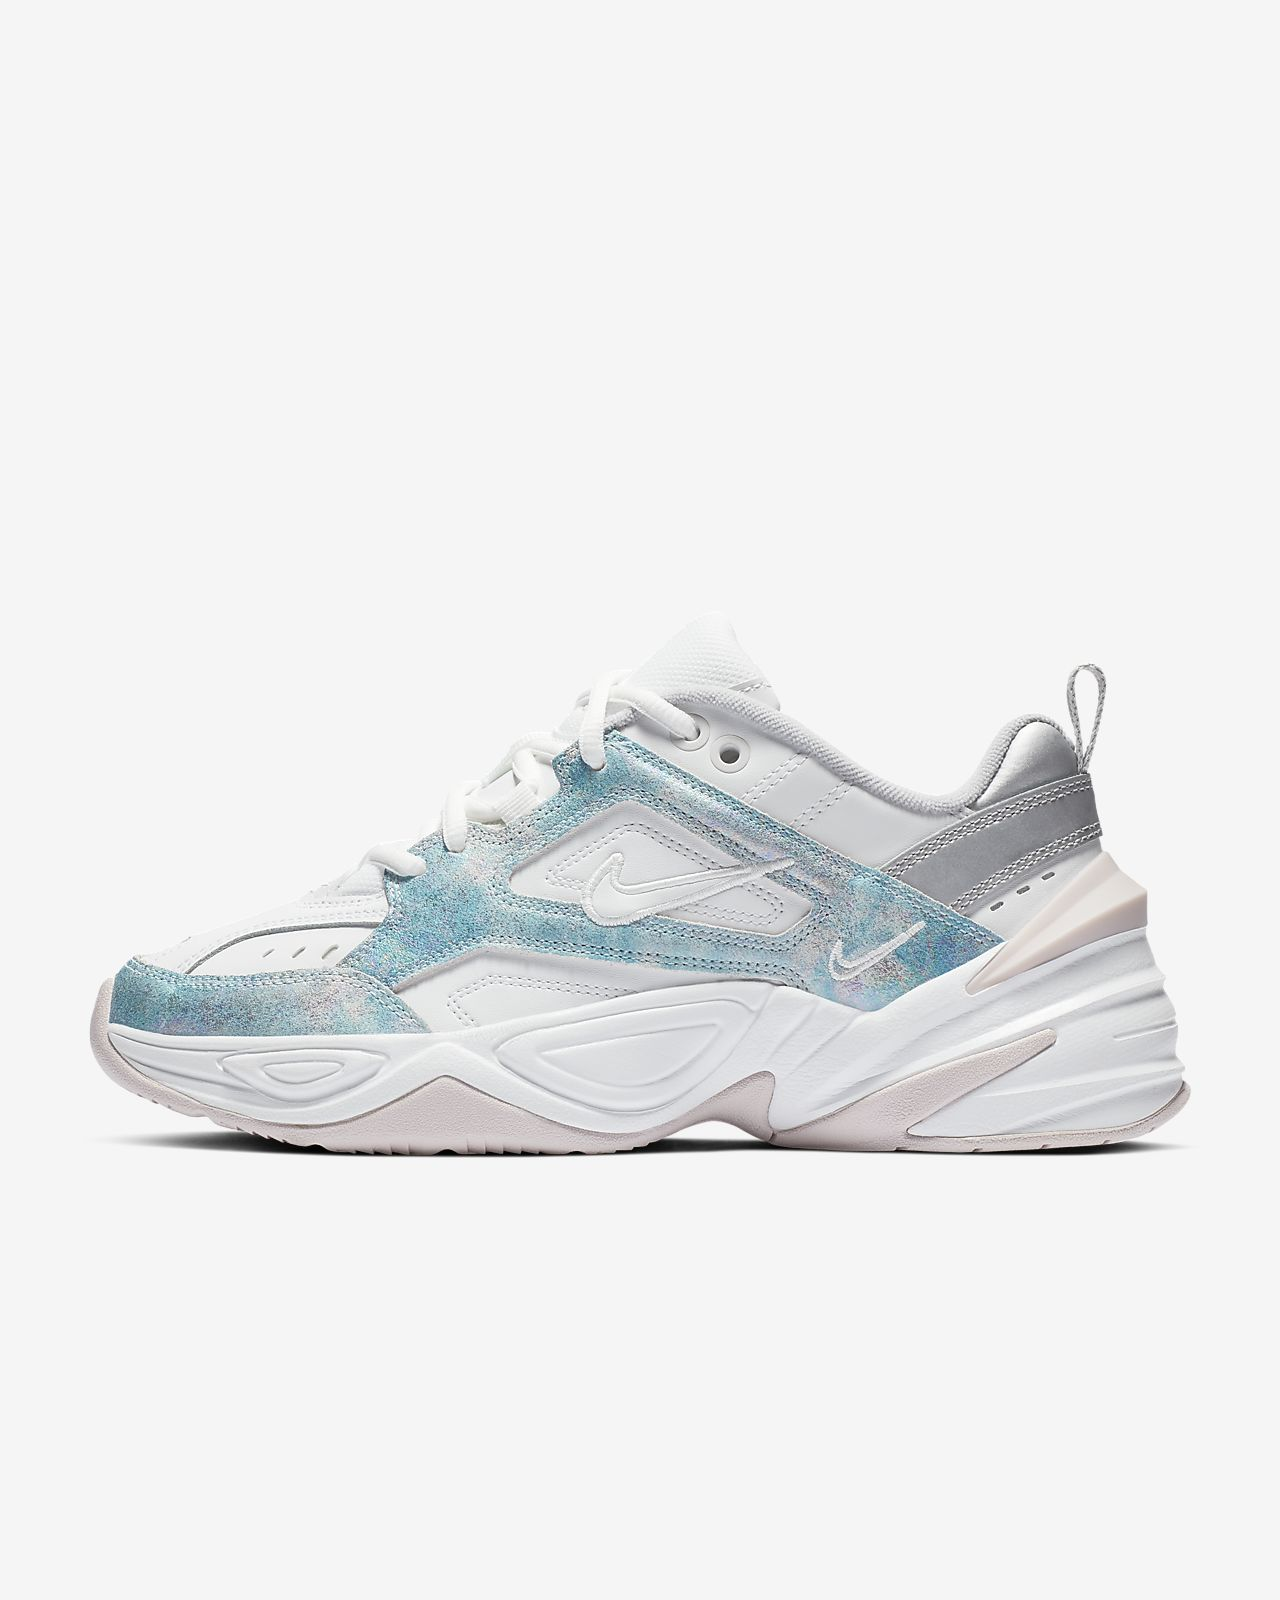 b2d53f181 Low Resolution Nike M2K Tekno Shoe Nike M2K Tekno Shoe